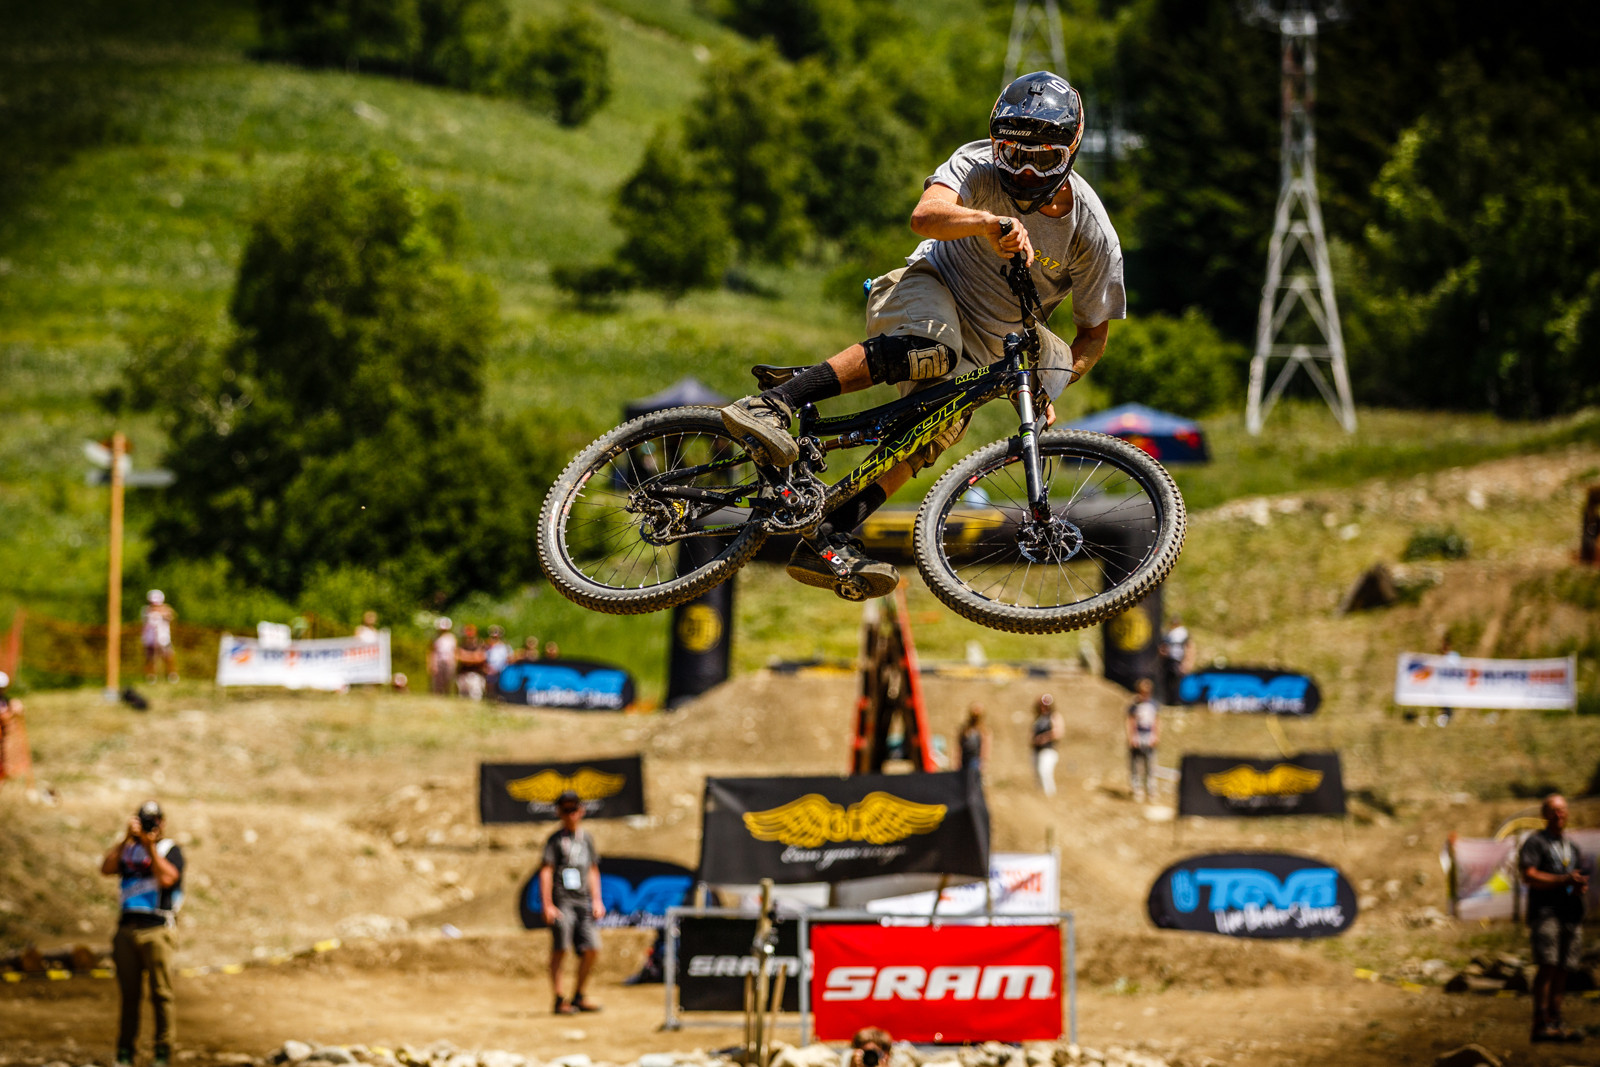 Dave McMillan 4th Place Clipped In at Crankworx L2A Dual Speed Style - Crankworx L2A Speed and Style Photos and Results - Mountain Biking Pictures - Vital MTB